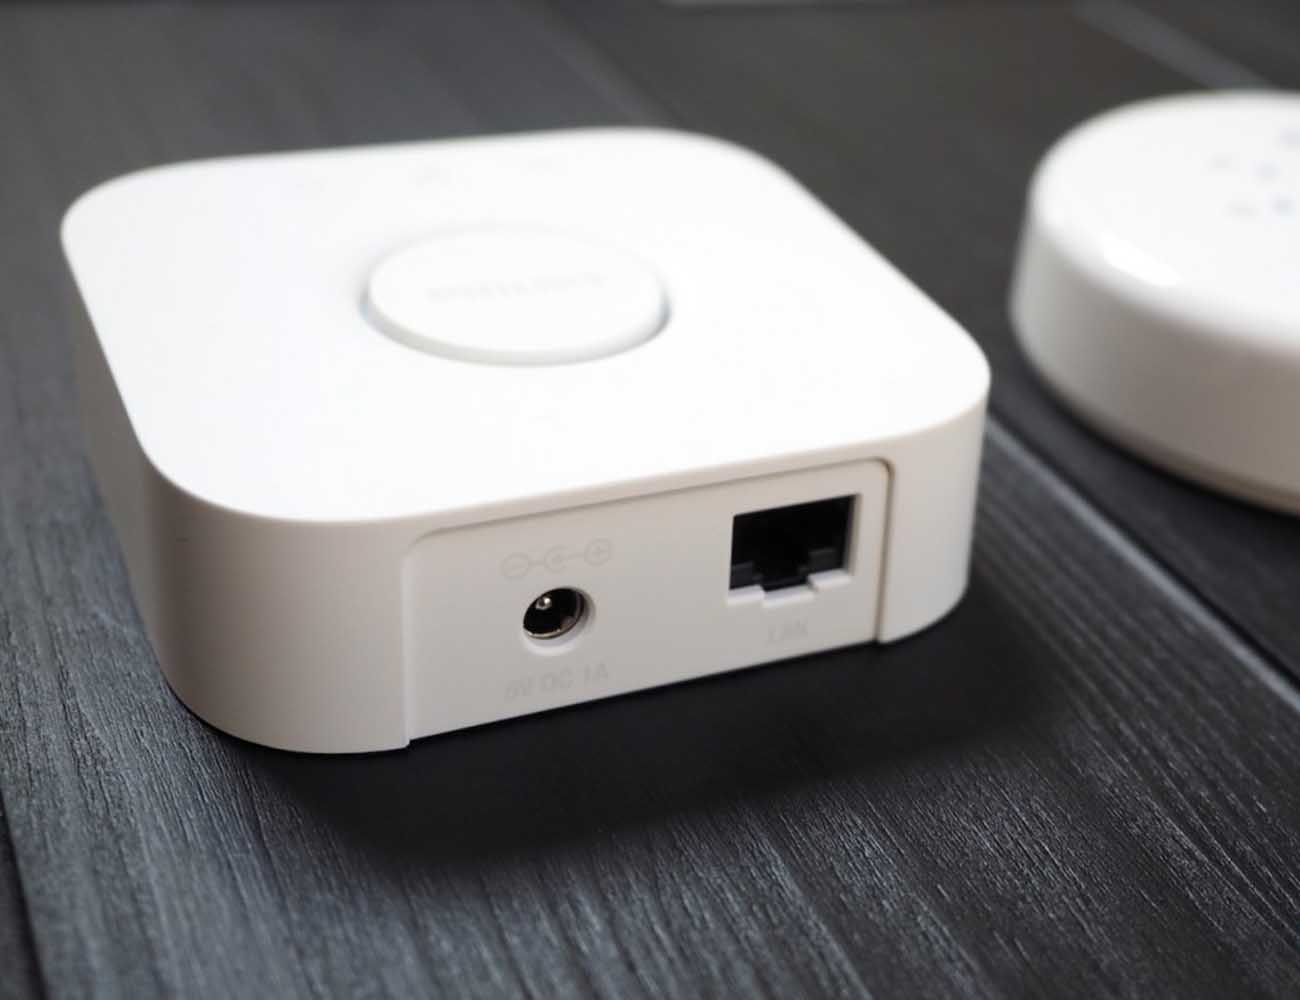 Philips Hue Bridge Homekit Philips Hue Bridge 2 With Homekit Compatibility